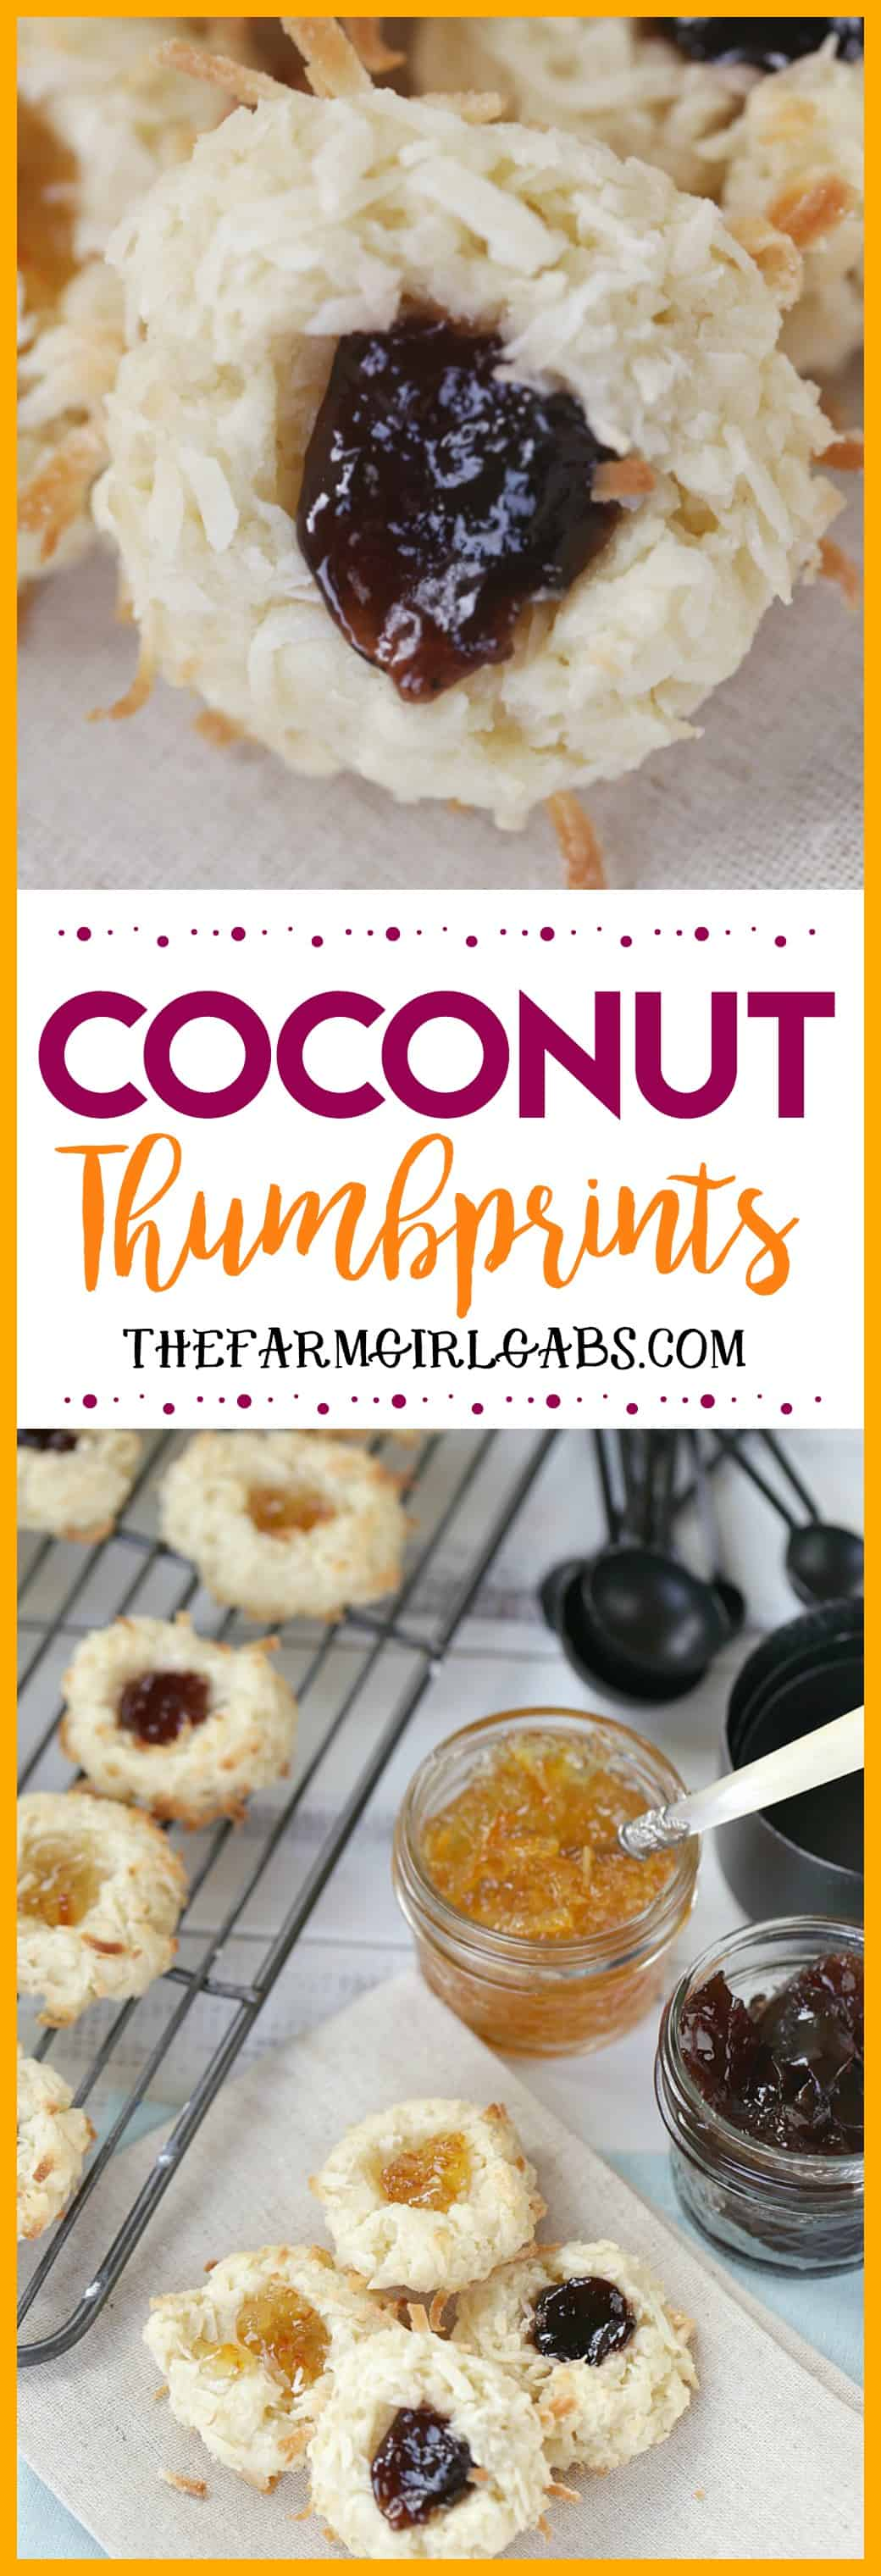 Soft and chewy, these Coconut Thumbprint Cookies are a great addition to your Christmas Cookie recipe routine. #Cookies #Baking #Recipe #ChristmasCookie